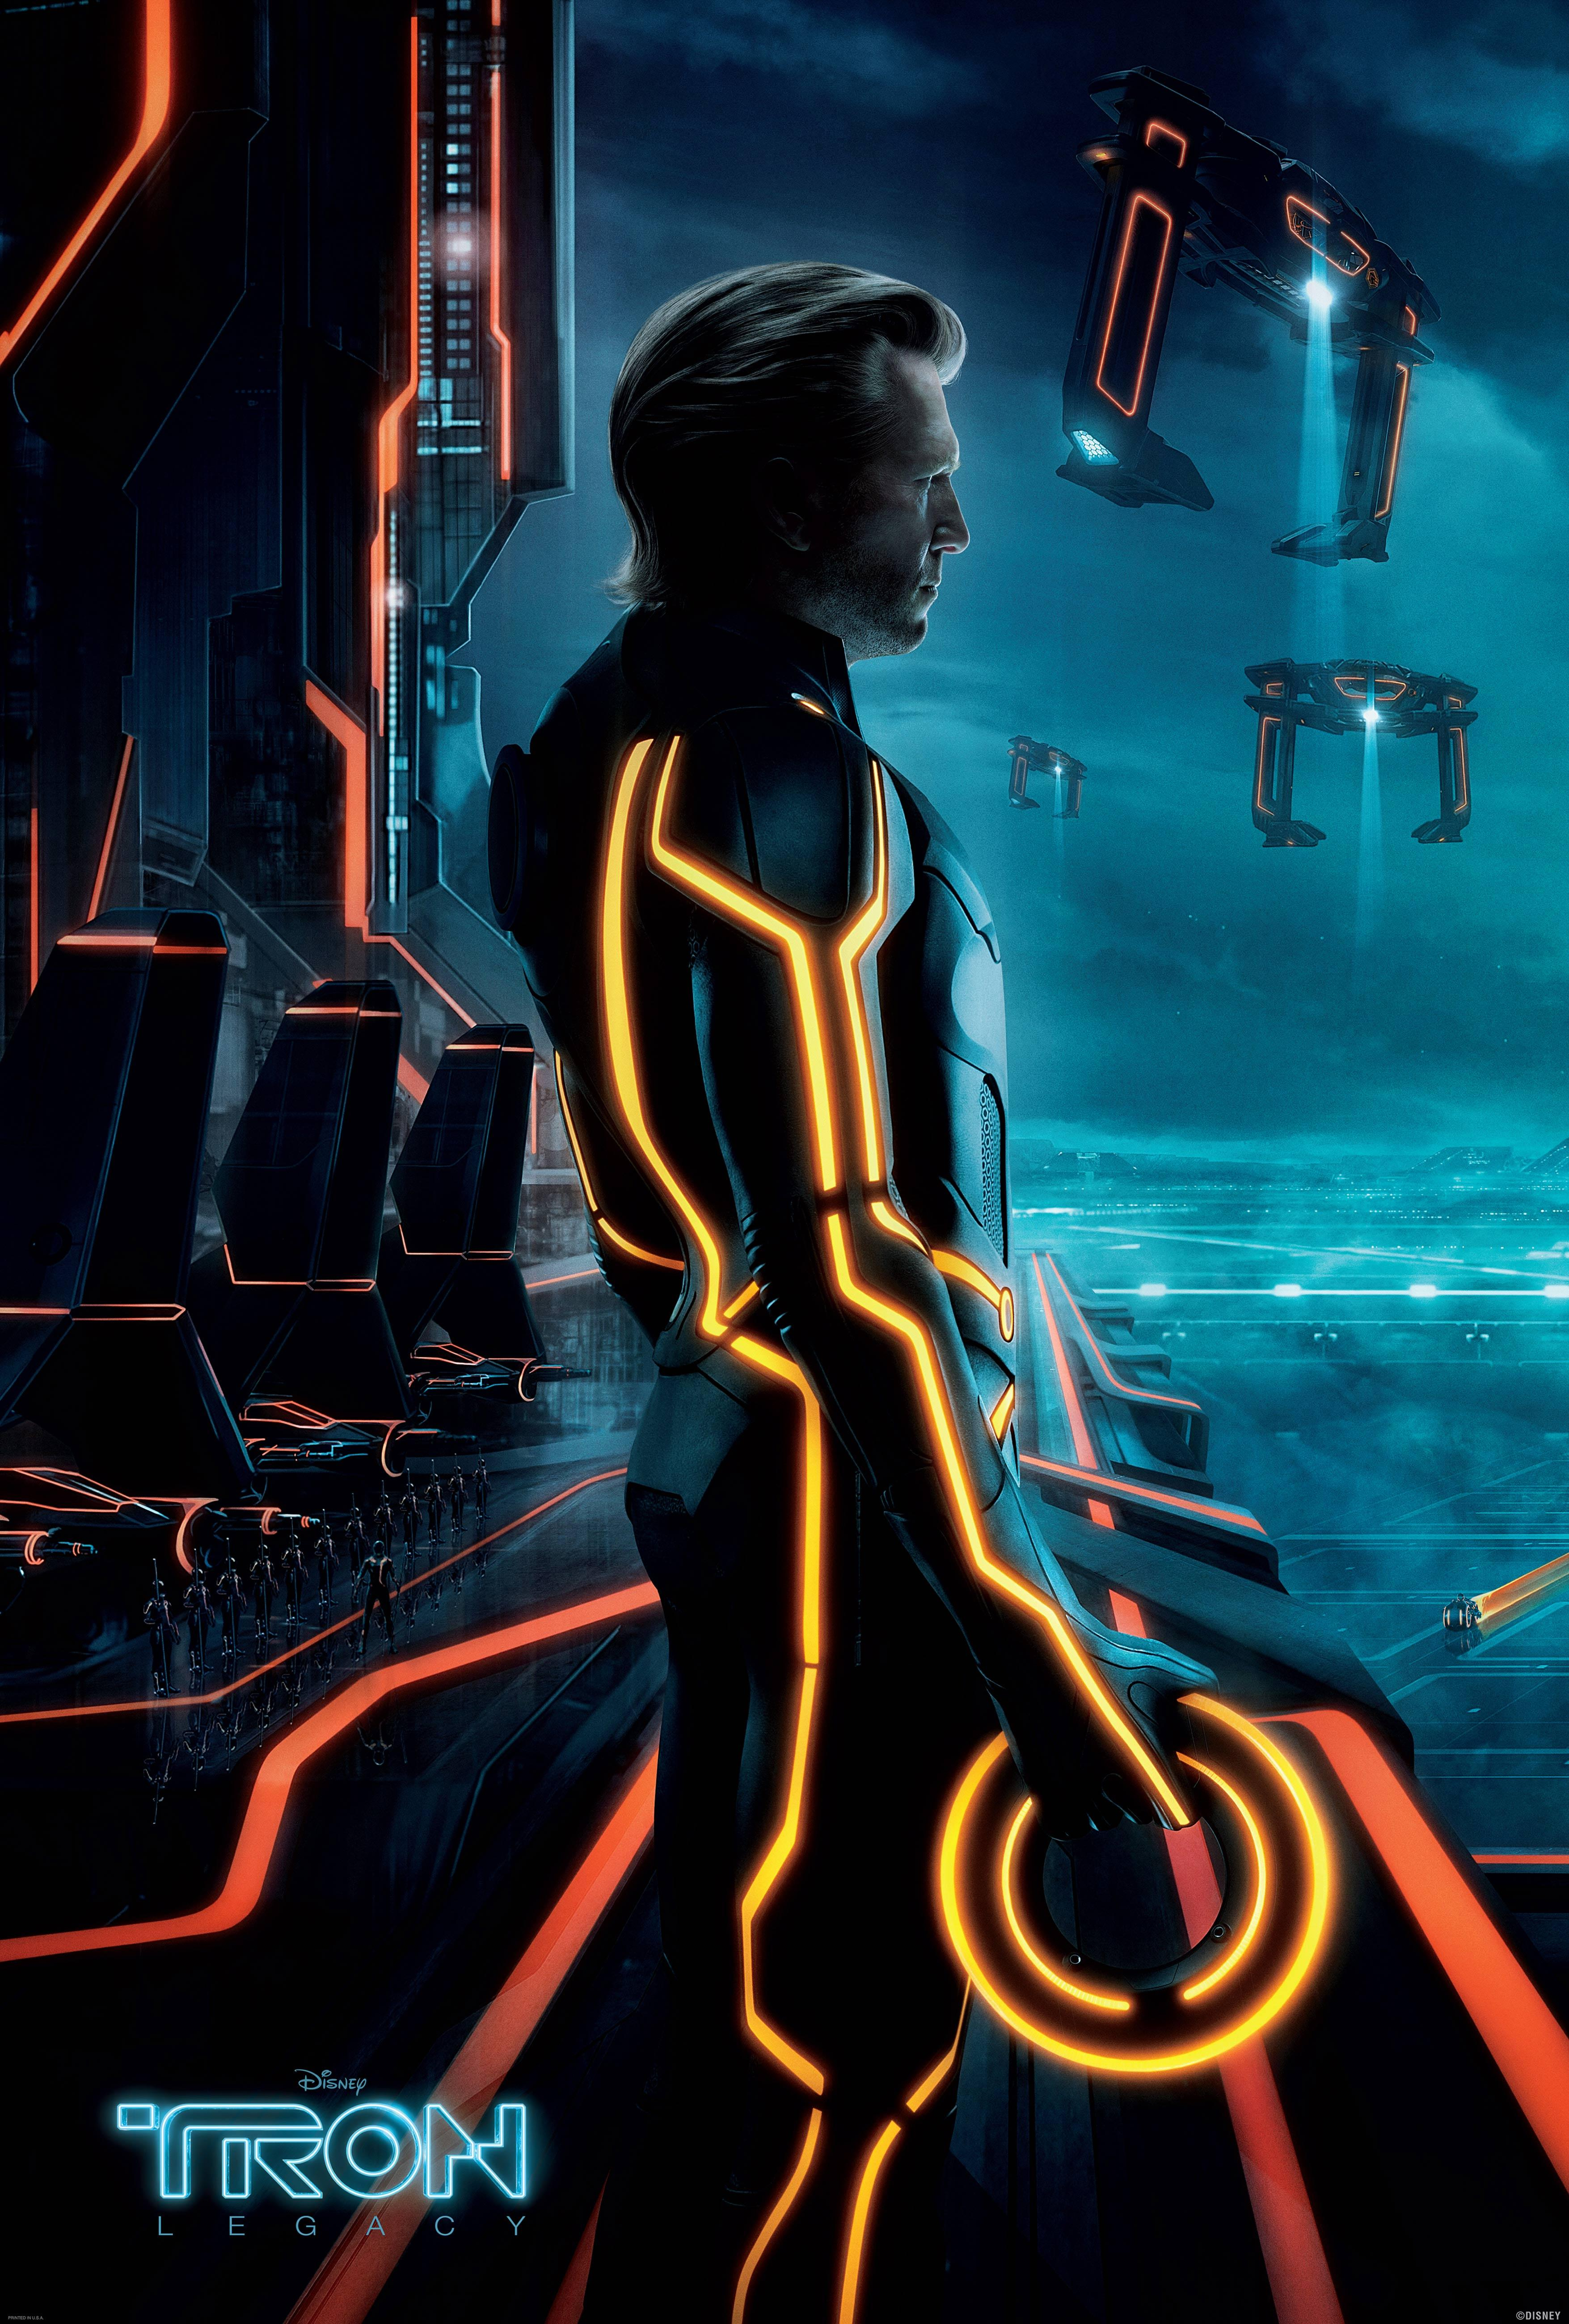 Tron Legacy Hd Wallpaper - Tron Legacy , HD Wallpaper & Backgrounds